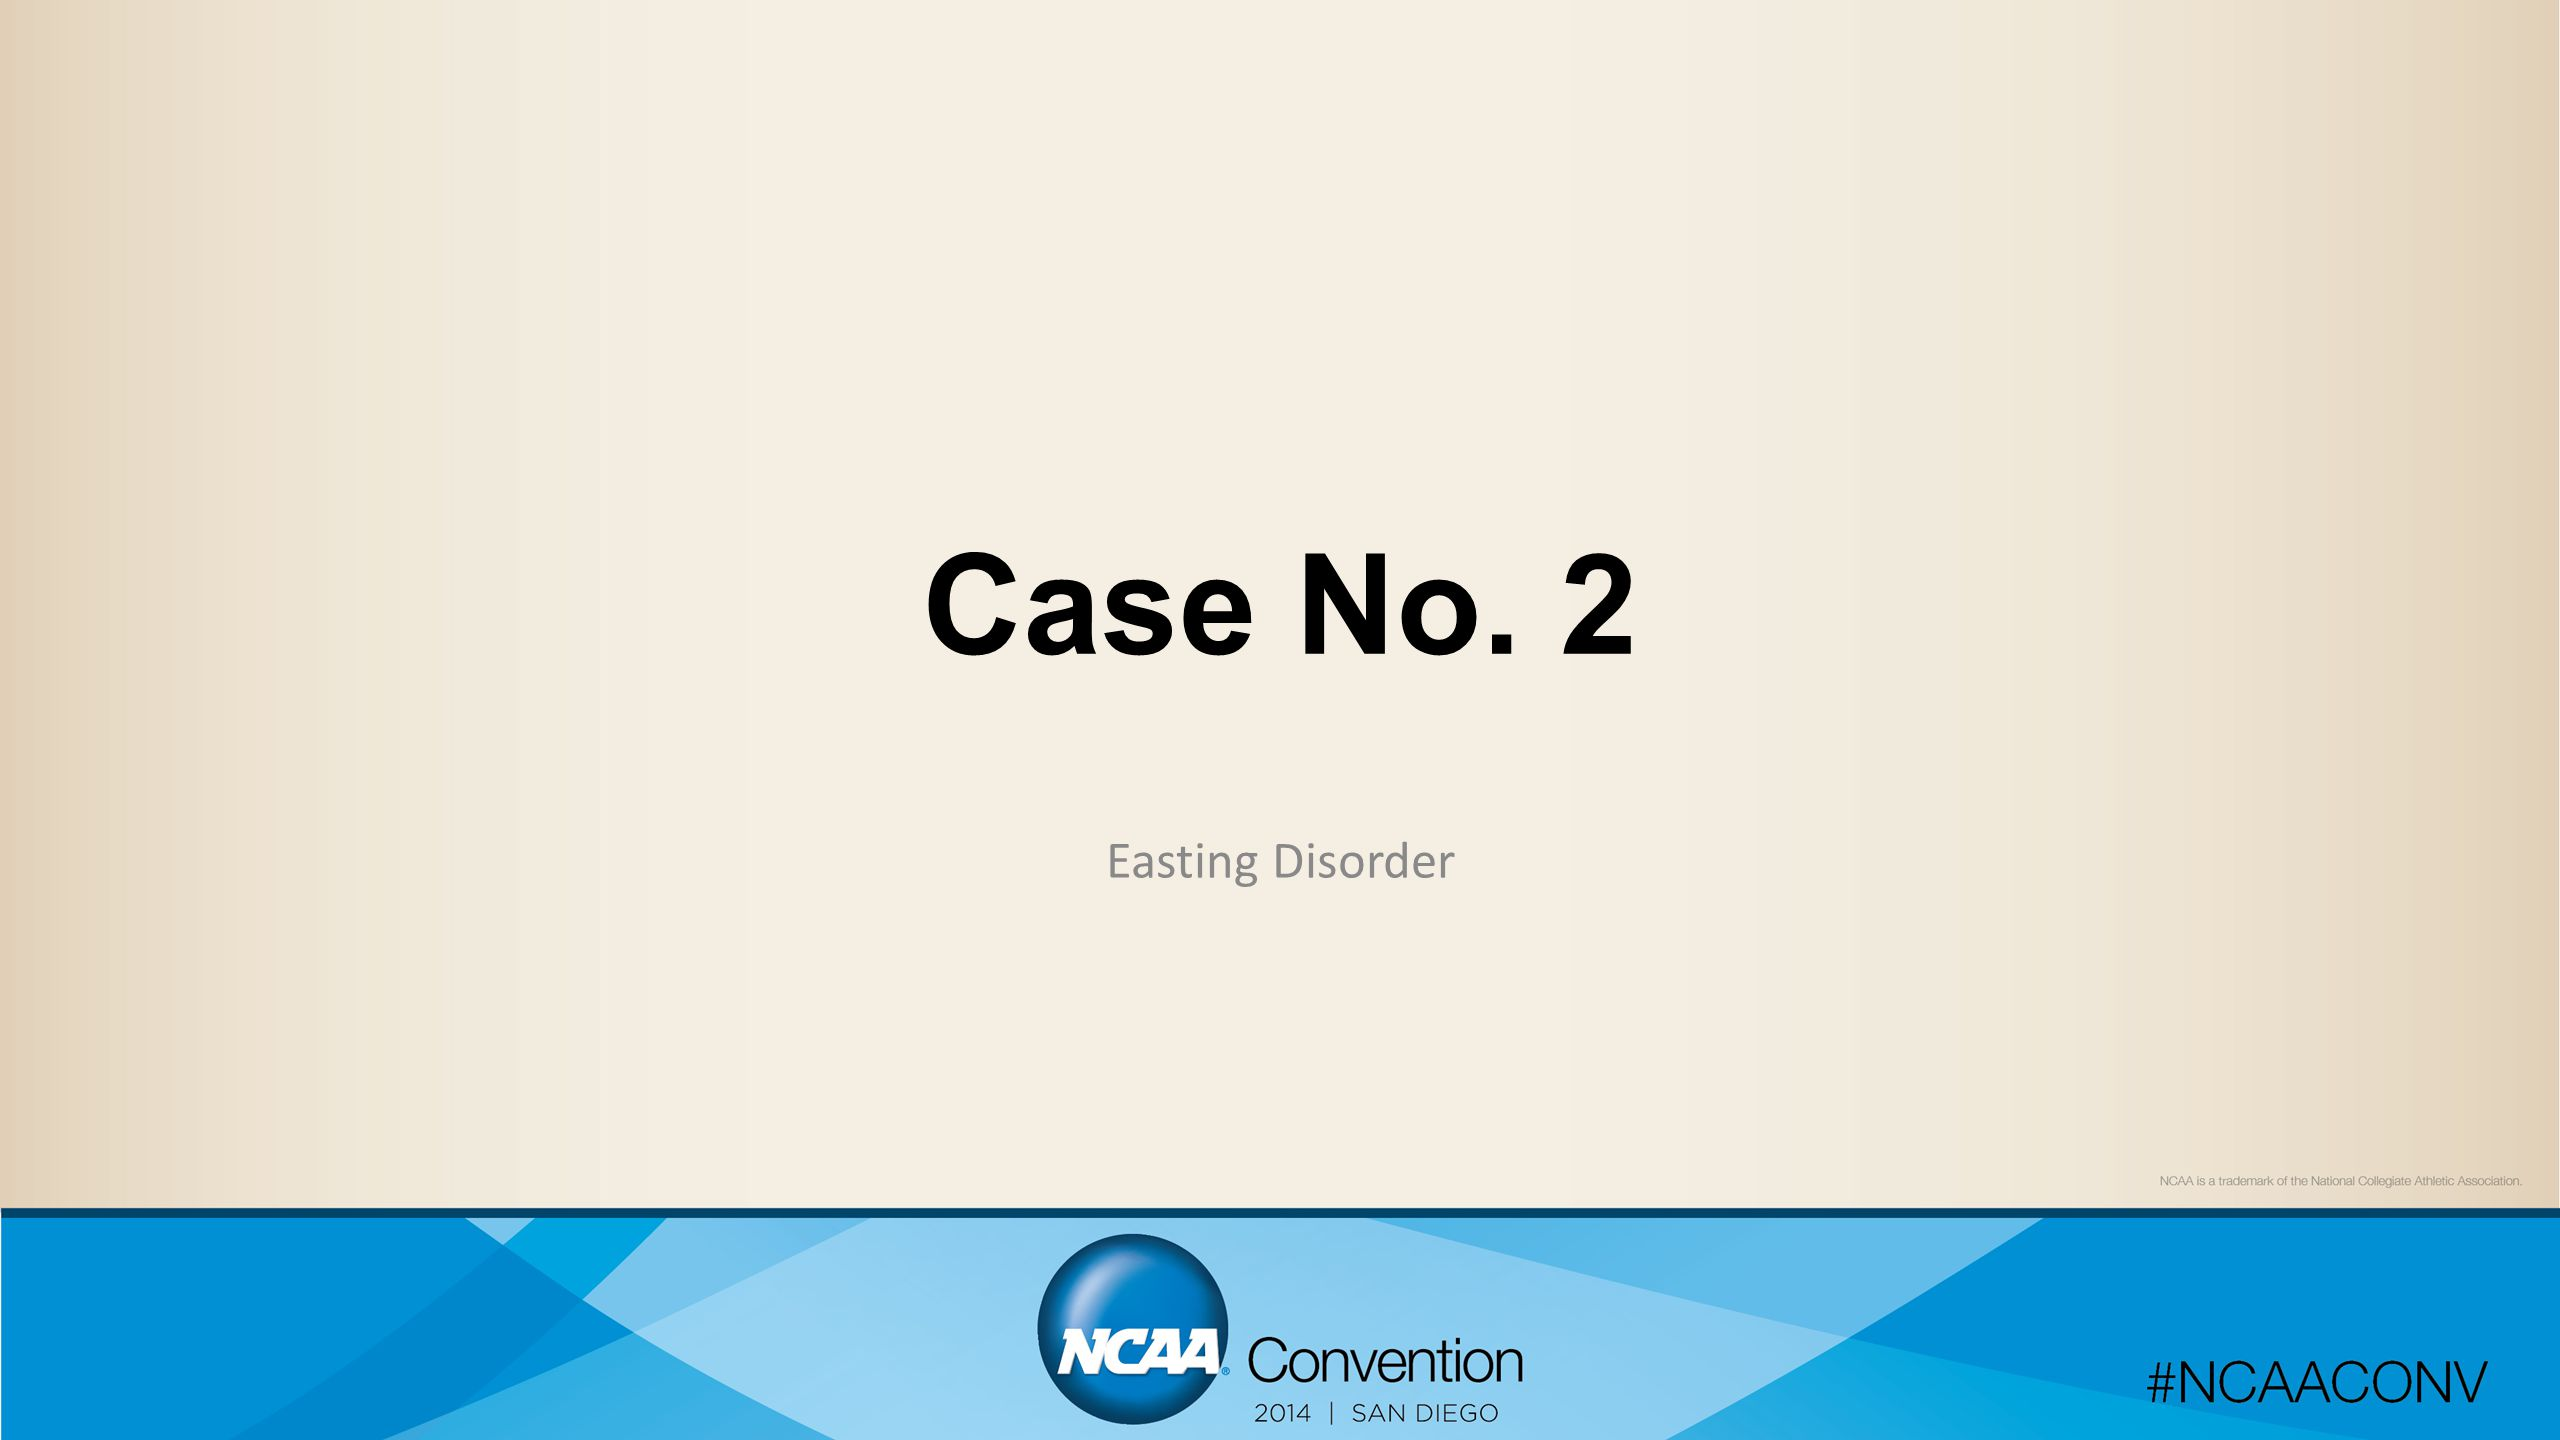 Case No. 2 Easting Disorder